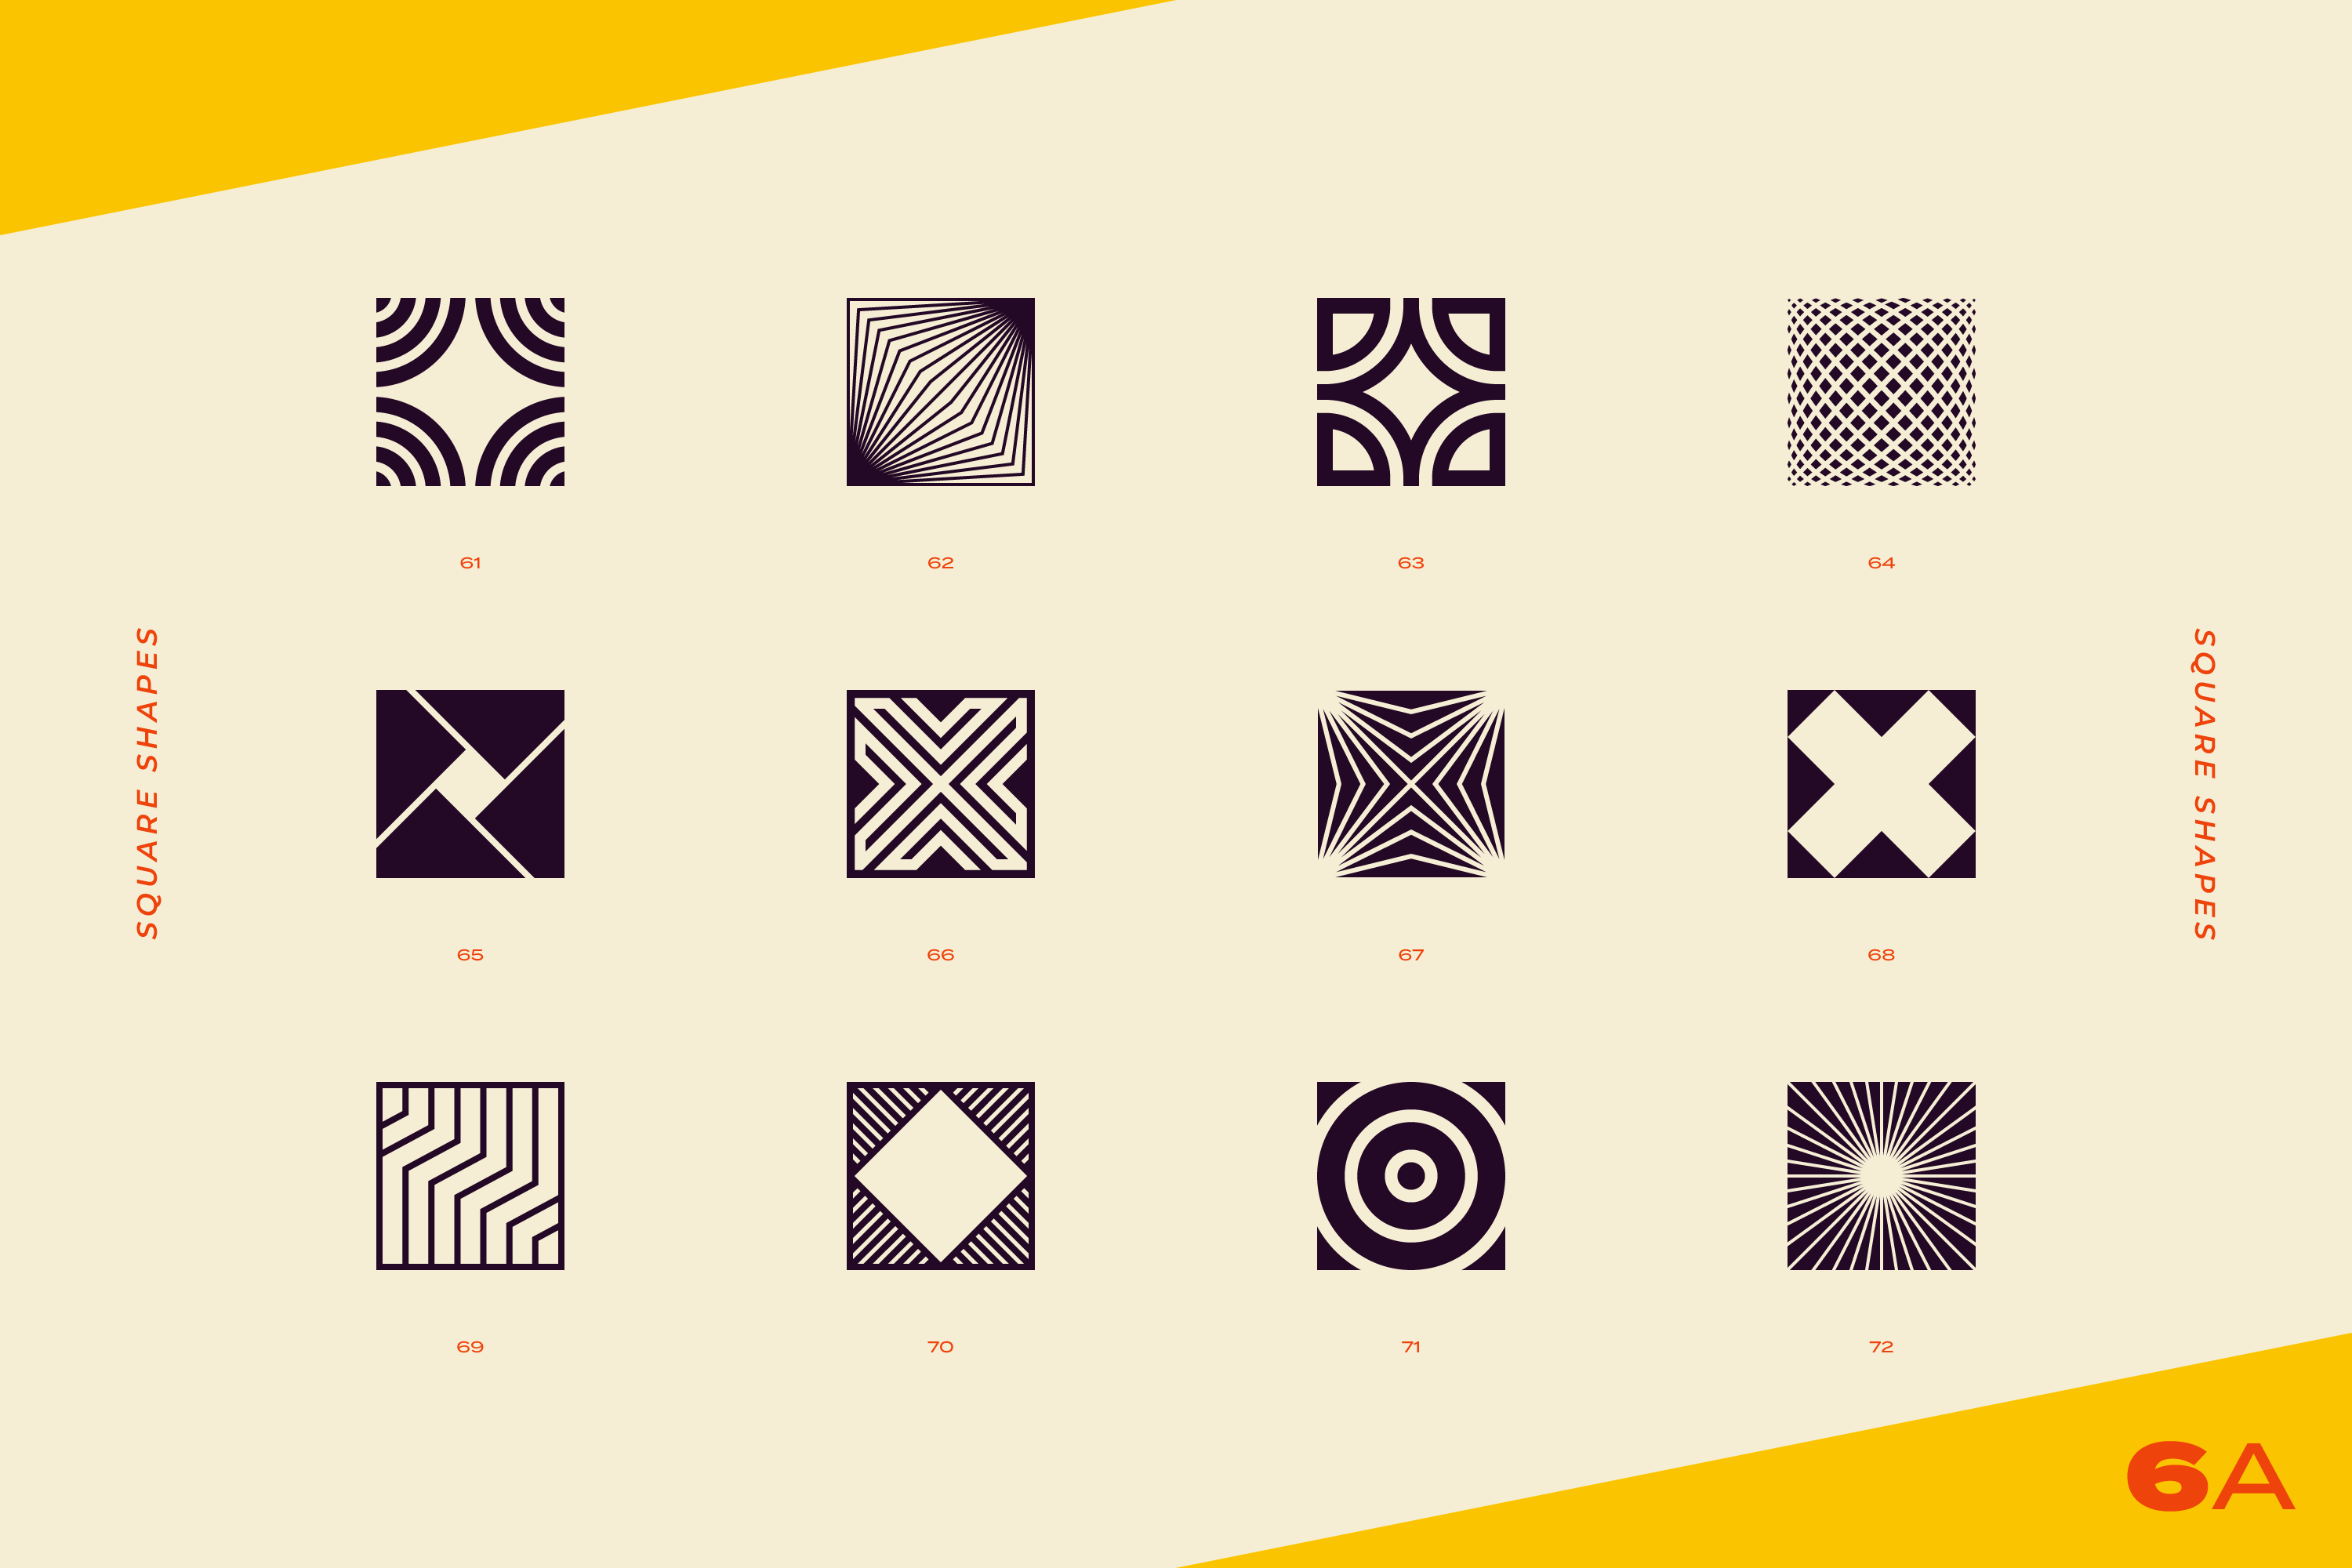 96 Abstract logo marks & geometric shapes collection example image 17